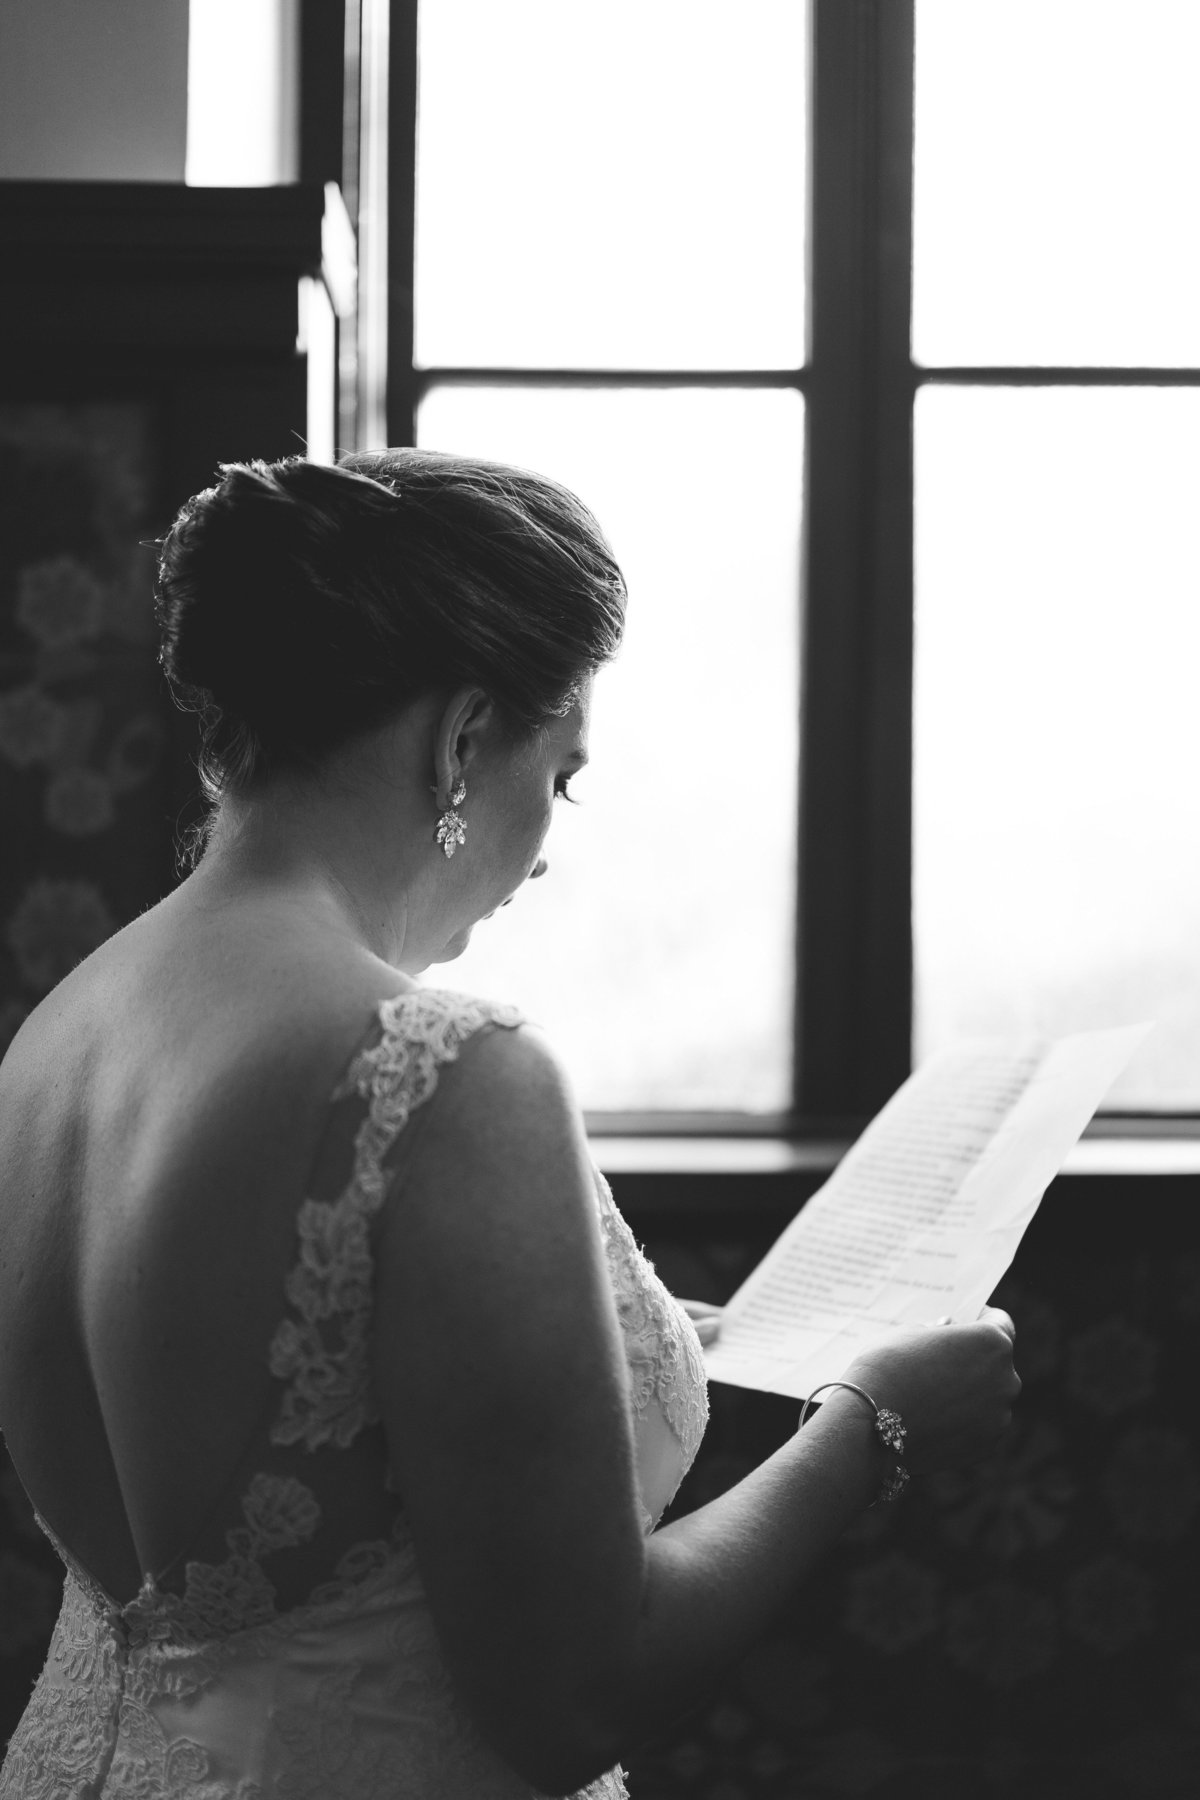 Bride reading over her wedding vows before wedding ceremony at Hotel Emma in downtown San Antonio